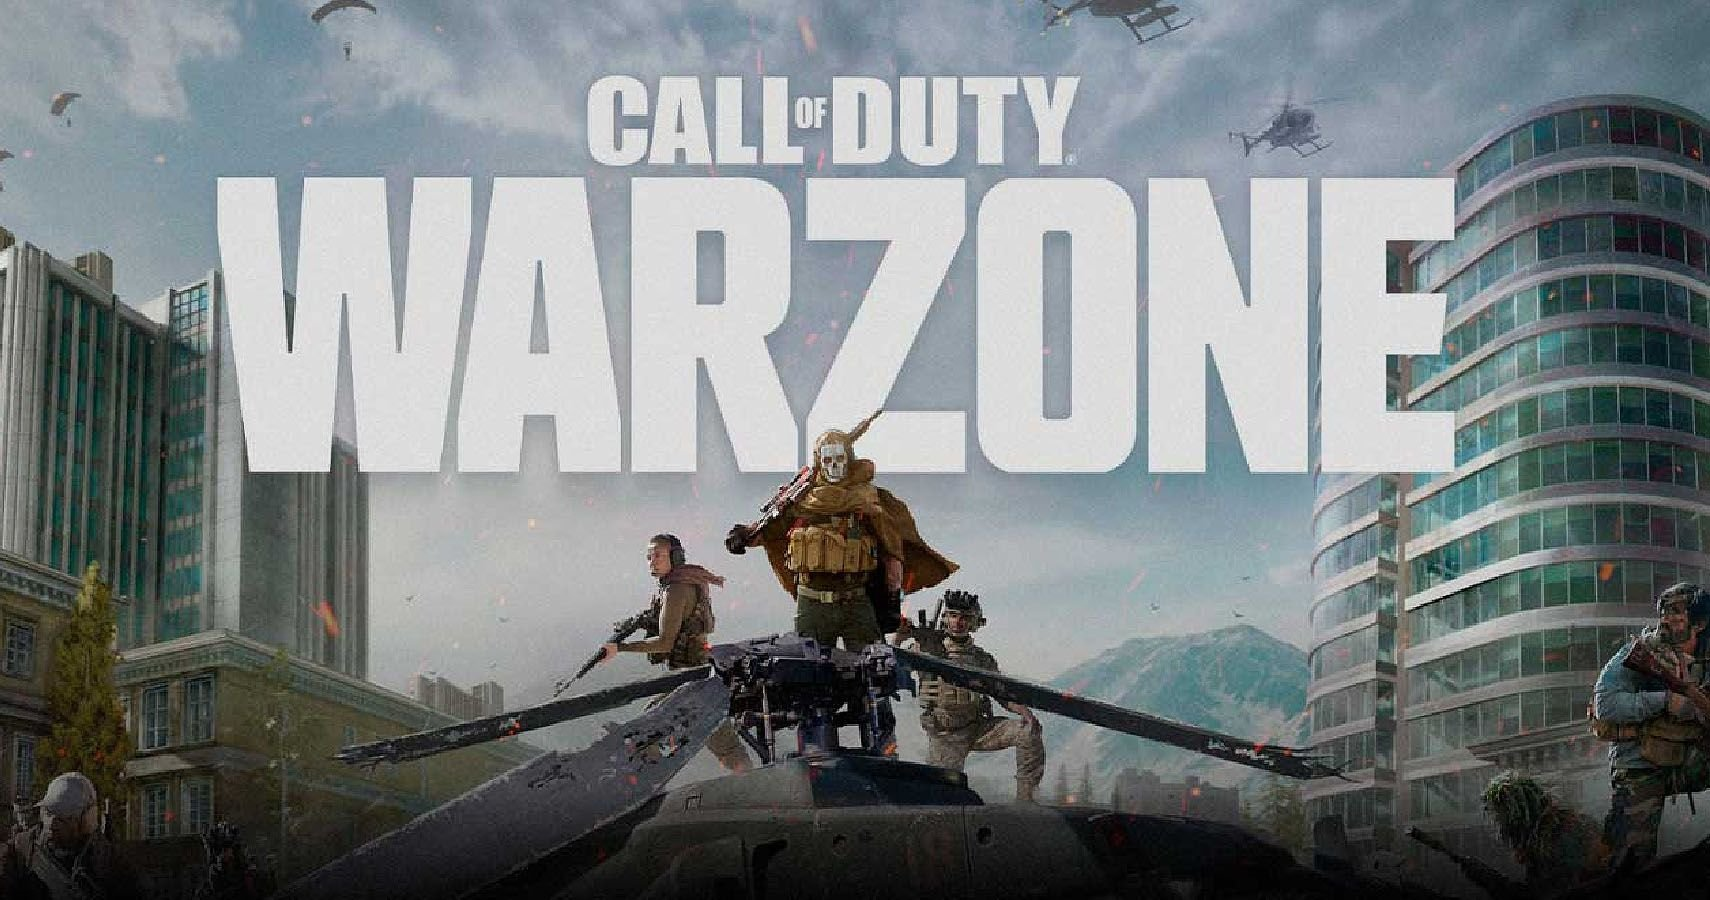 Call Of Duty Warzone: The 15 Best Weapons For Beginners